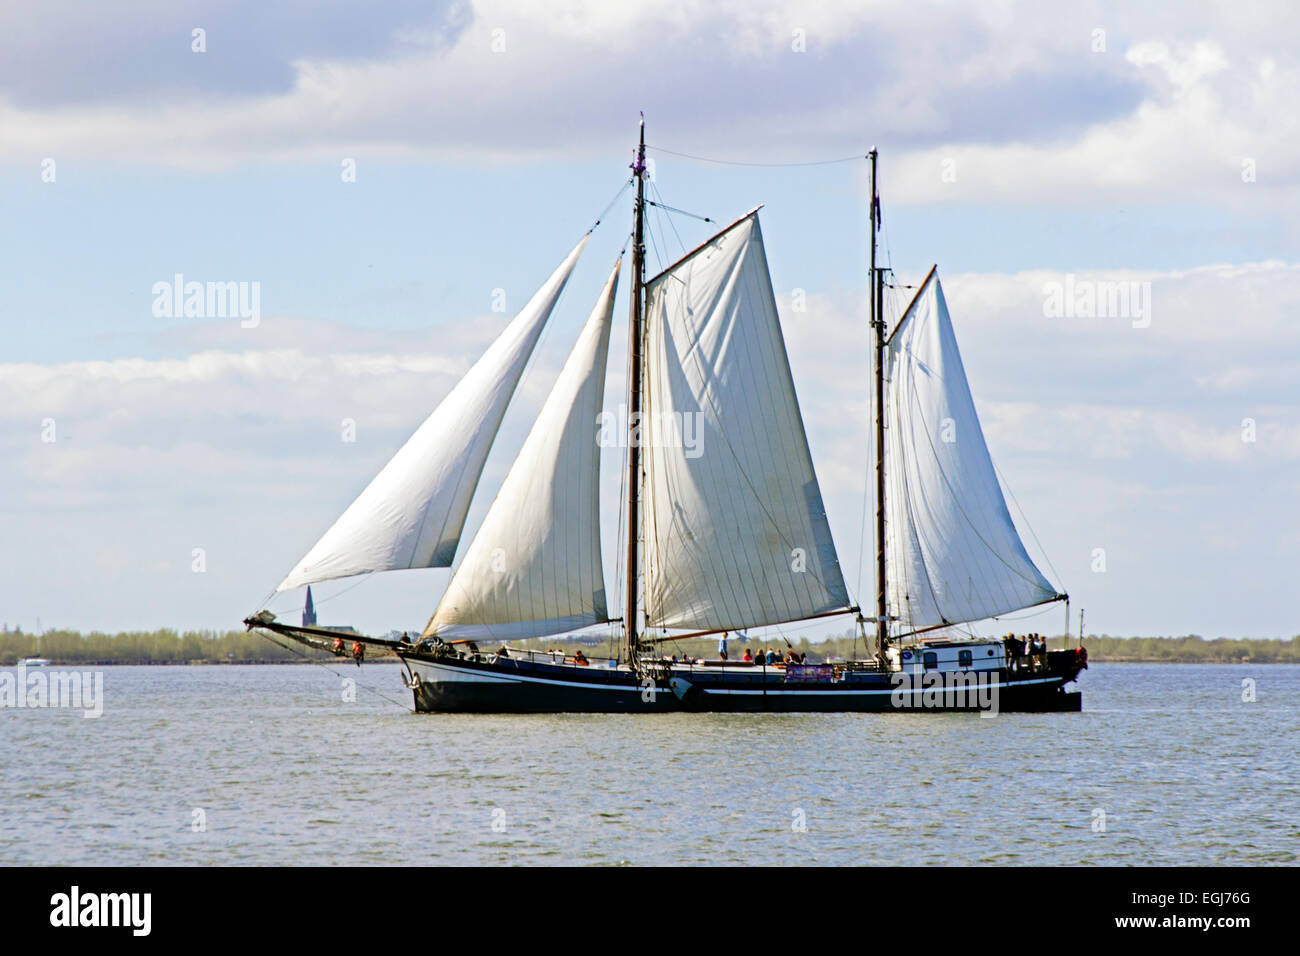 Traditional sailing ships on the IJsselmeer in the Netherlands - Stock Image